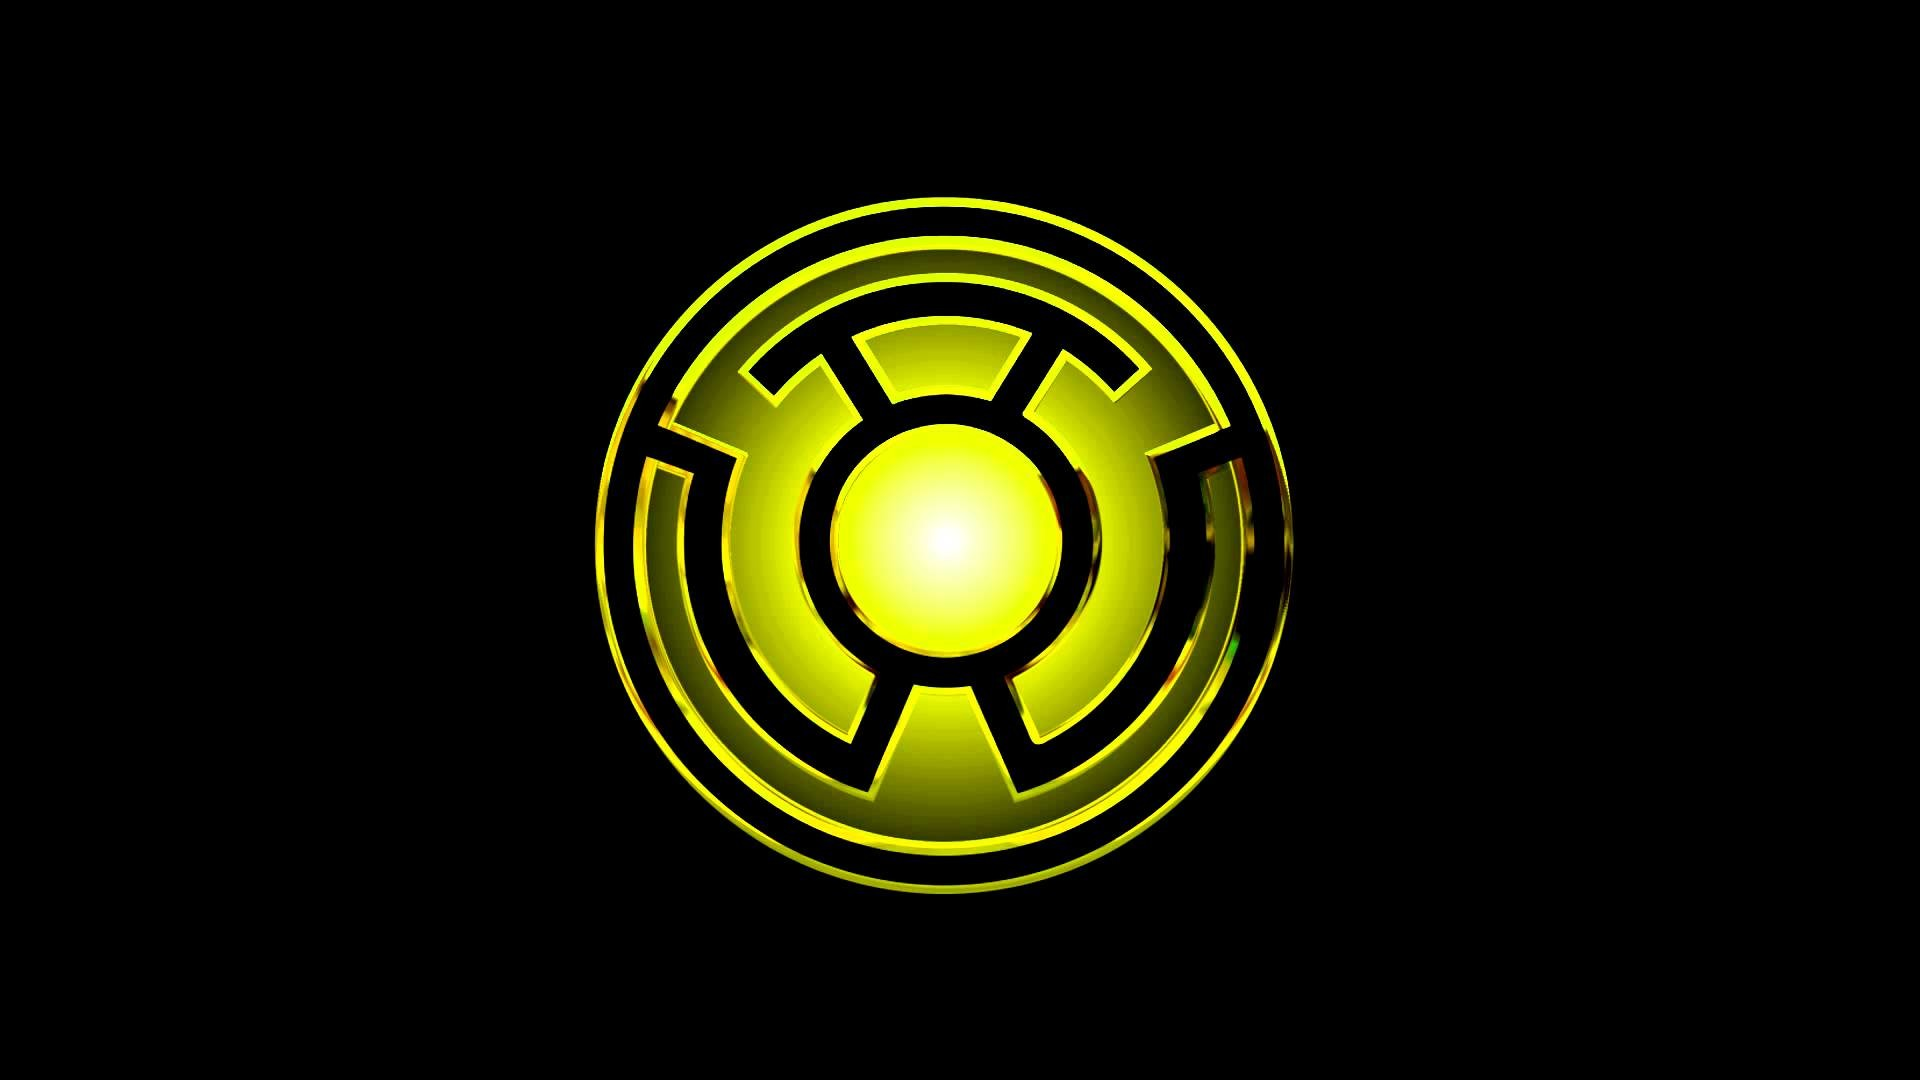 yellow lantern oath - HD 1920×1080